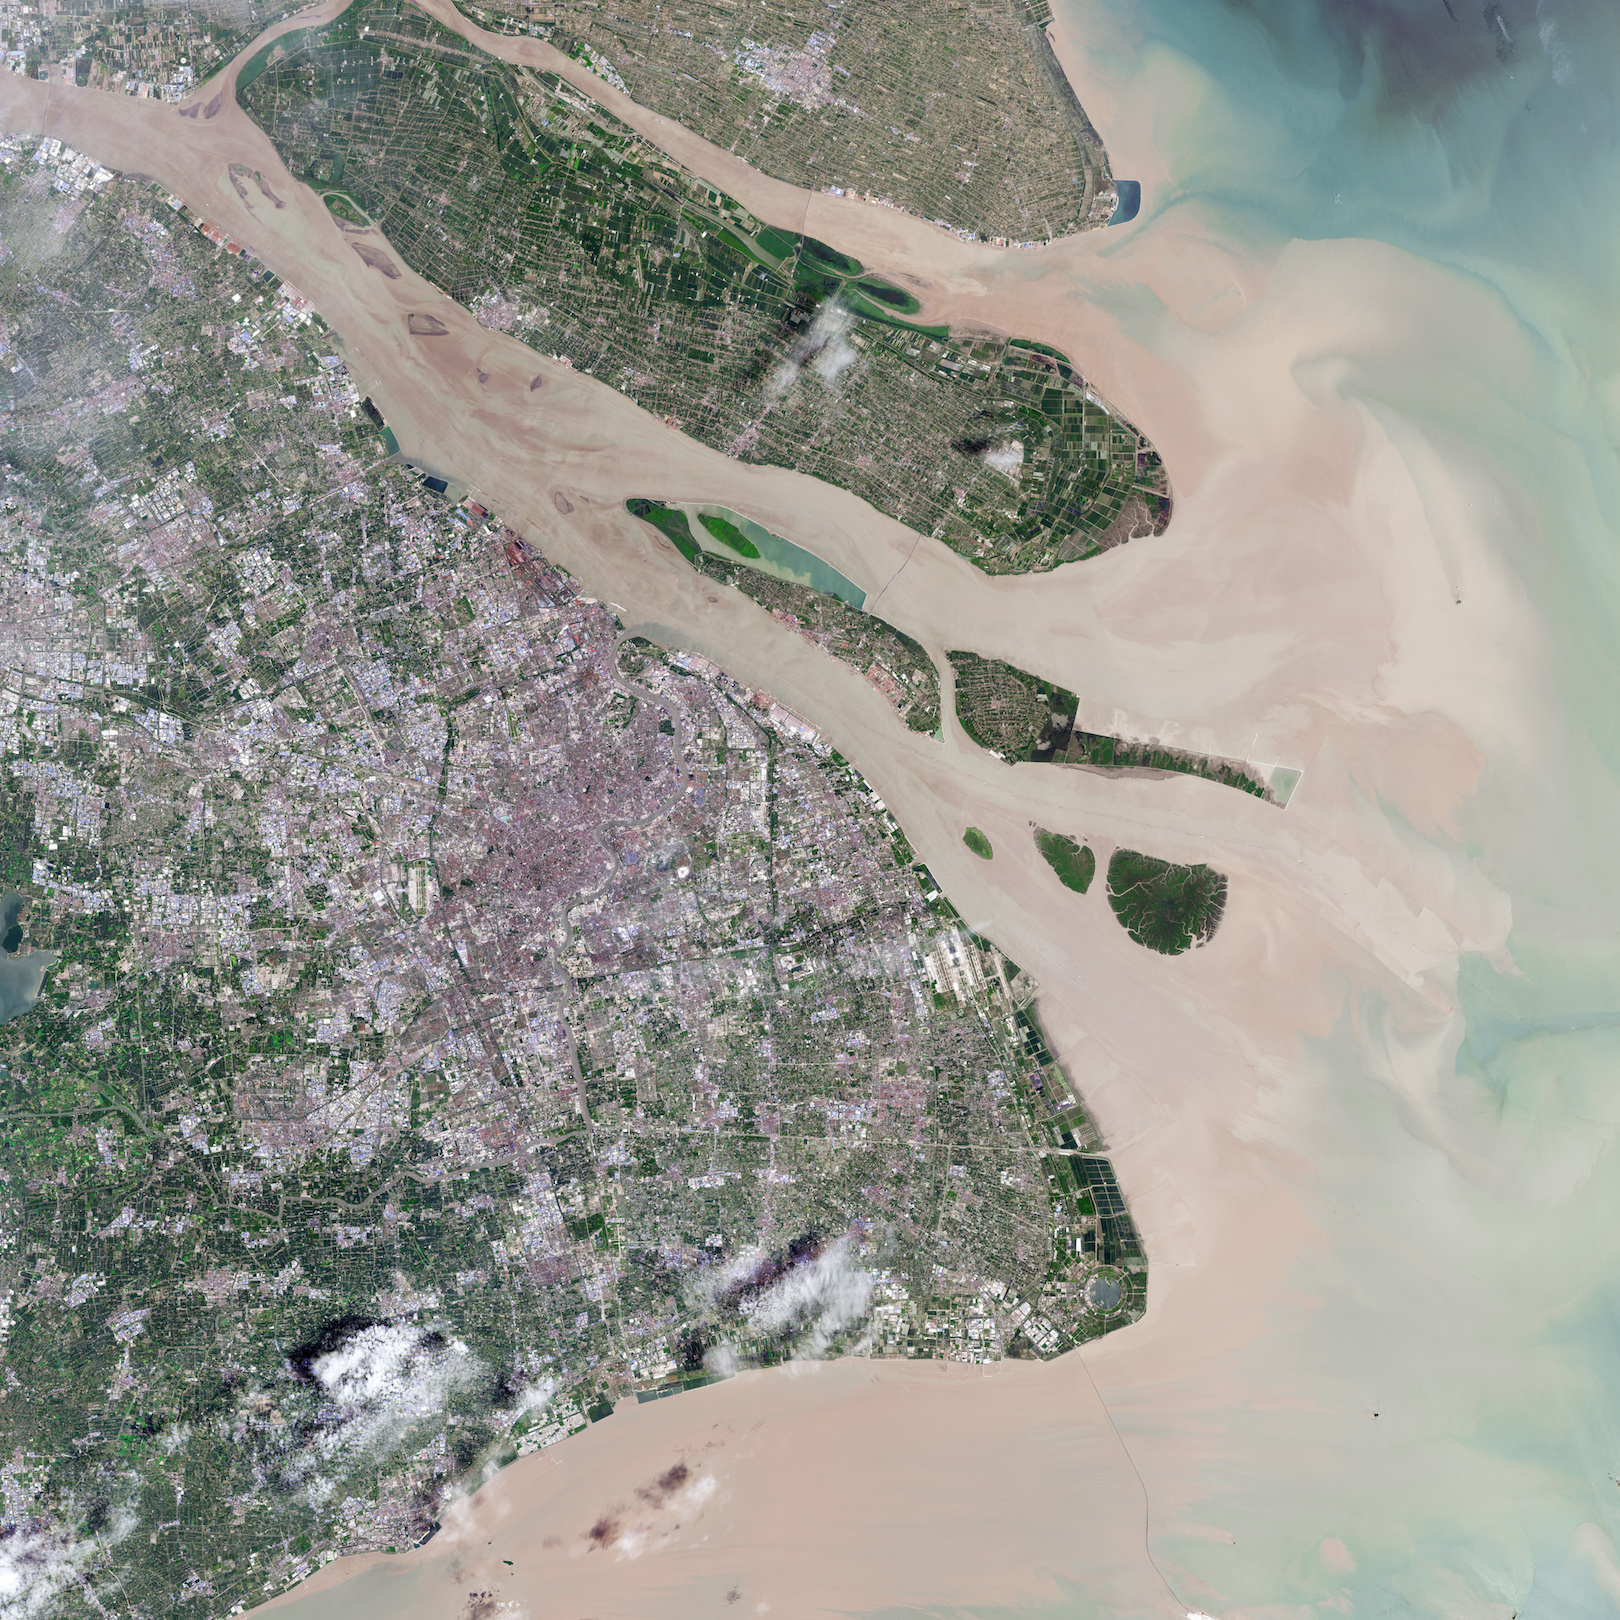 Today's Image of the Day comes courtesy of the NASA Earth Observatory and features a look at the Qingcaosha freshwater reservoir in Shanghai.